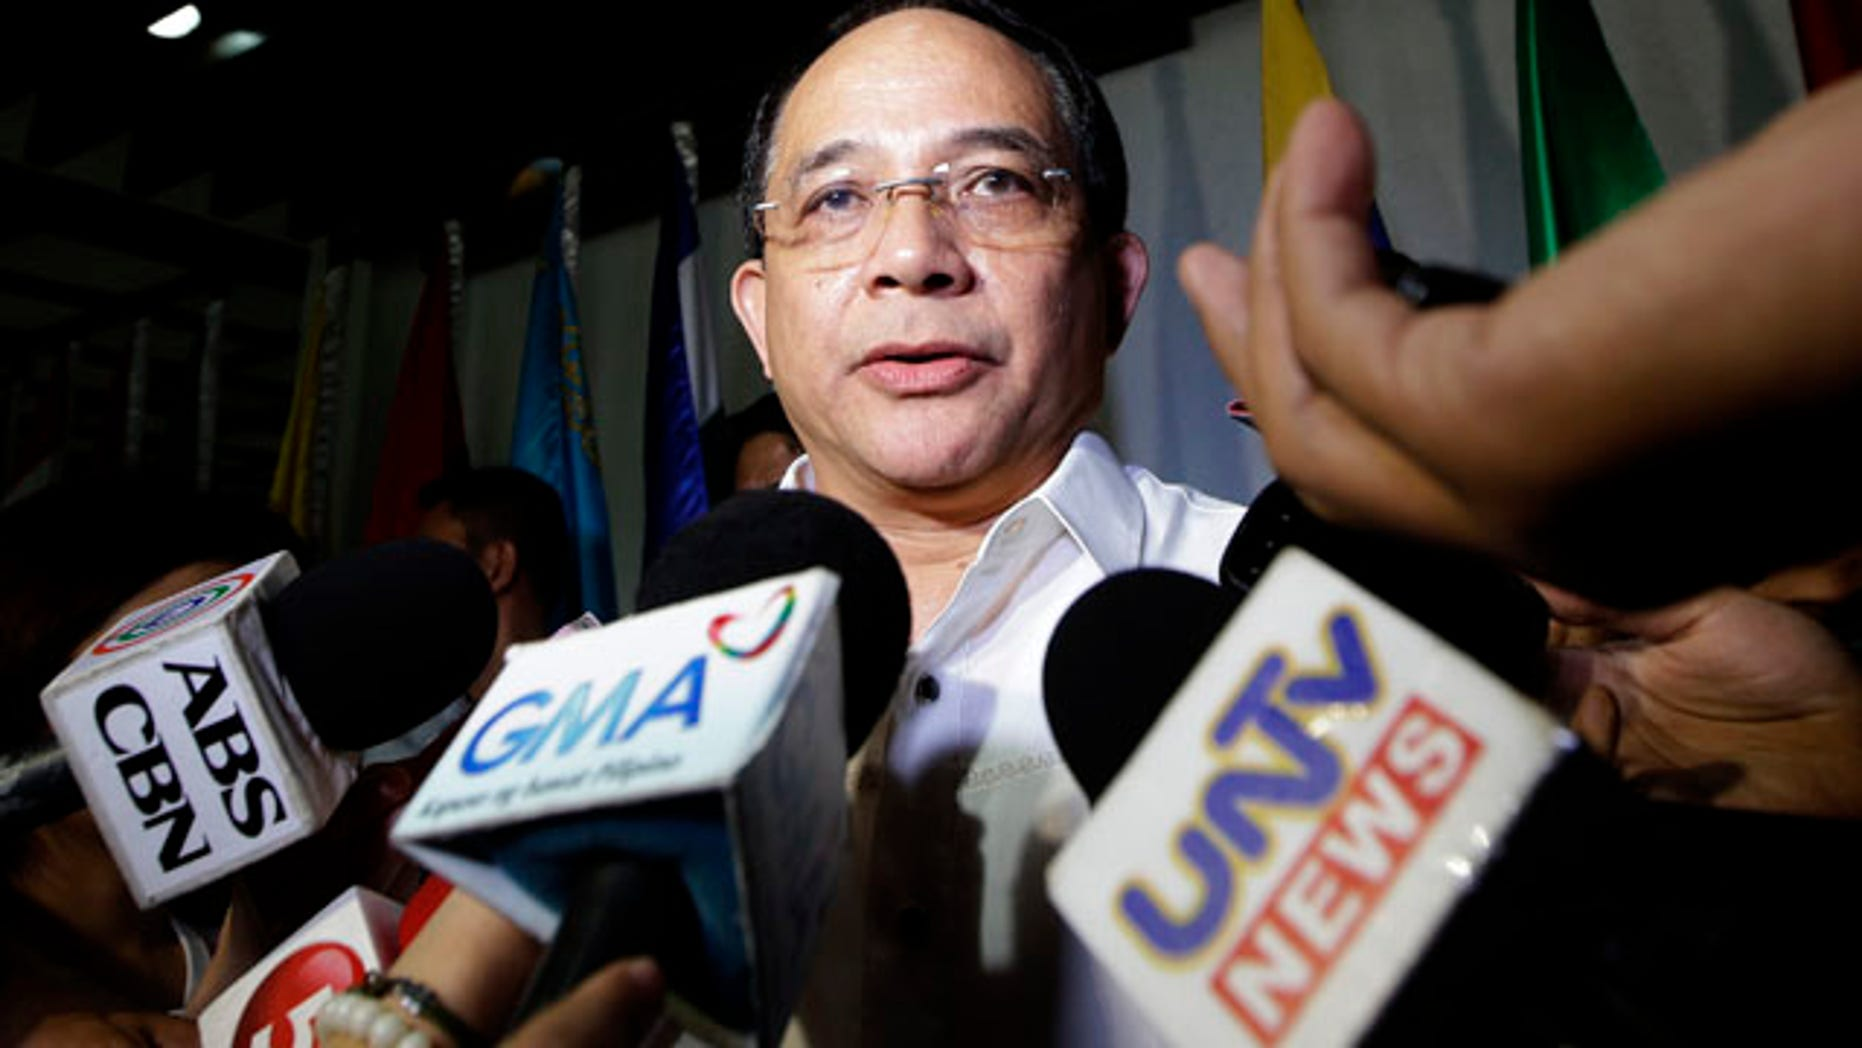 October 13, 2014: Eduardo Oban Jr., head of the Visiting Forces Agreement Commission which is tasked to paving the way for hundreds of U.S. forces to hold combat exercises with Filipino troops in the south, talks to the media on the possible involvement of a 'foreigner' in the killing of a transgender at Olongapo city, in northwestern Philippines, which houses a former U.S. naval base off Subic Bay. (AP Photo/Bullit Marquez)